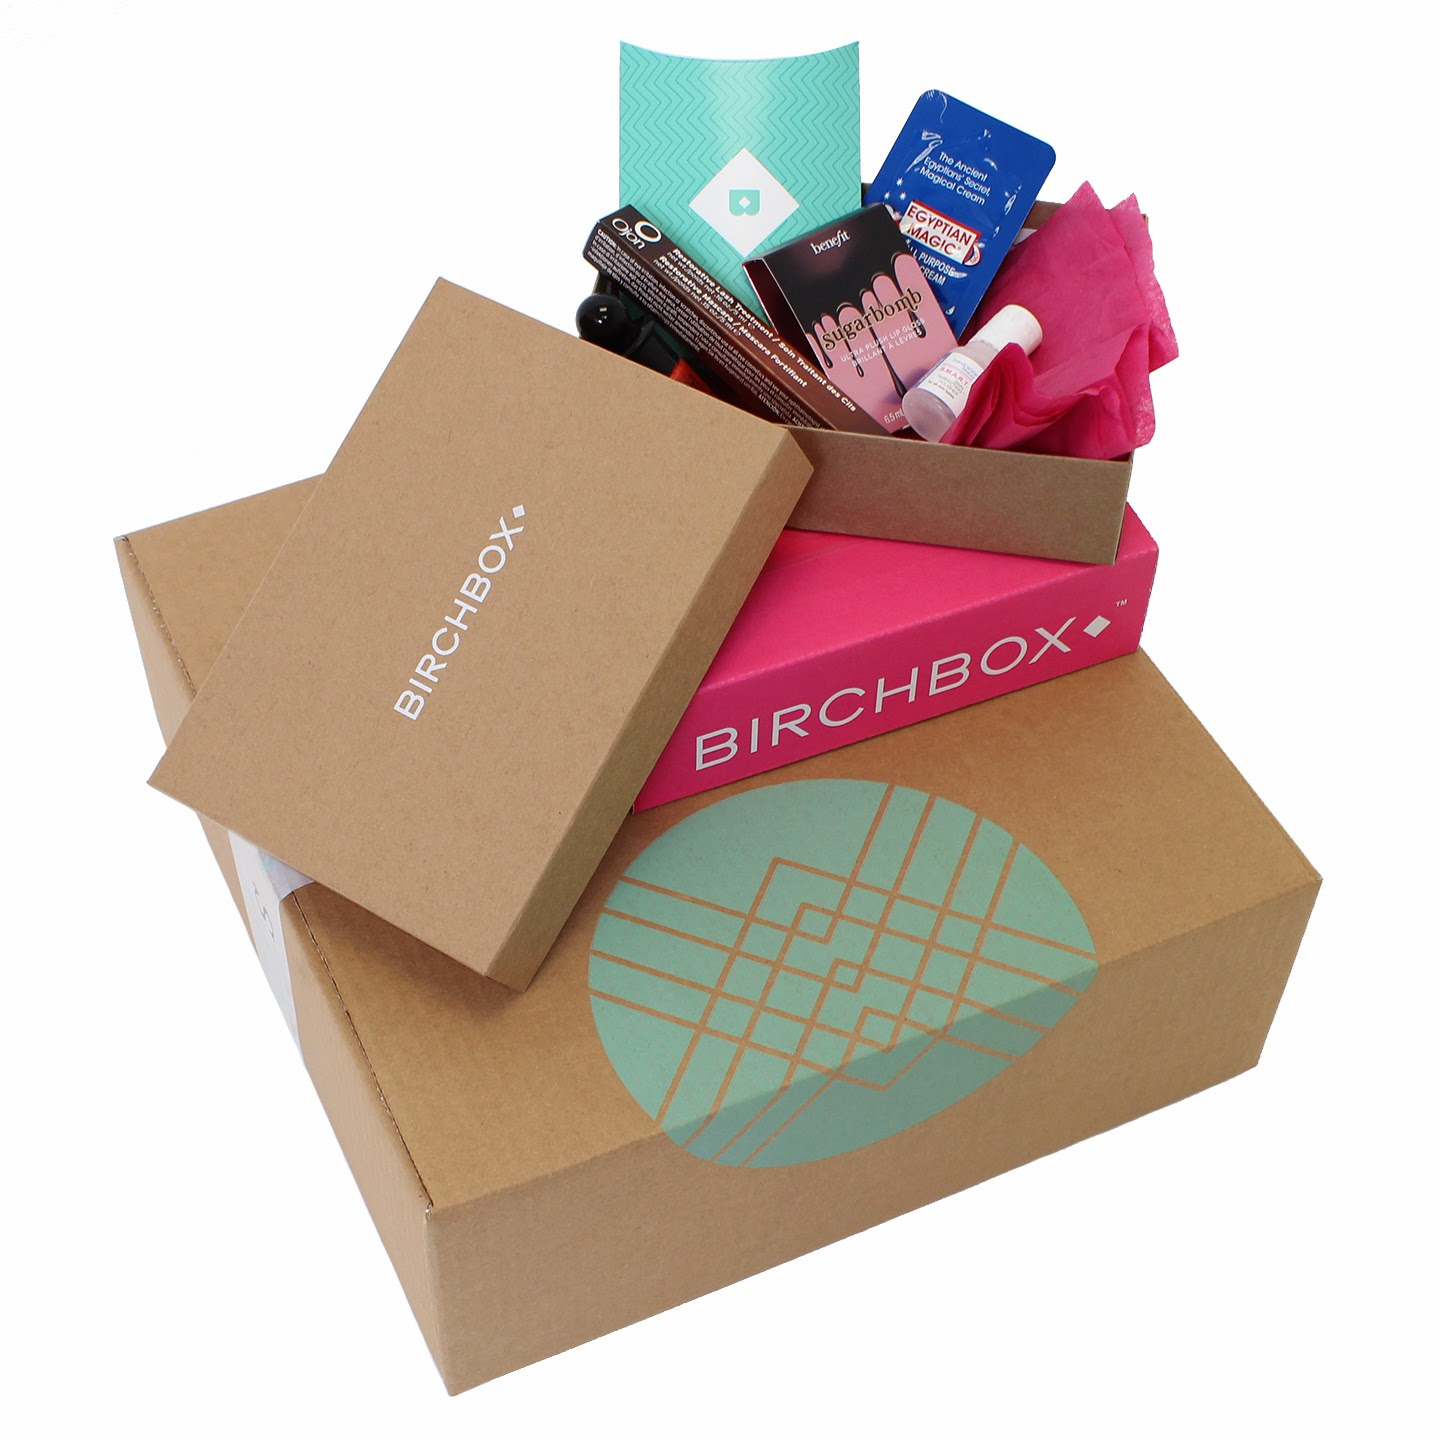 How to use Birchbox promo codes and coupons: Birchbox makes it easy to spot their promo code box, putting it just below the